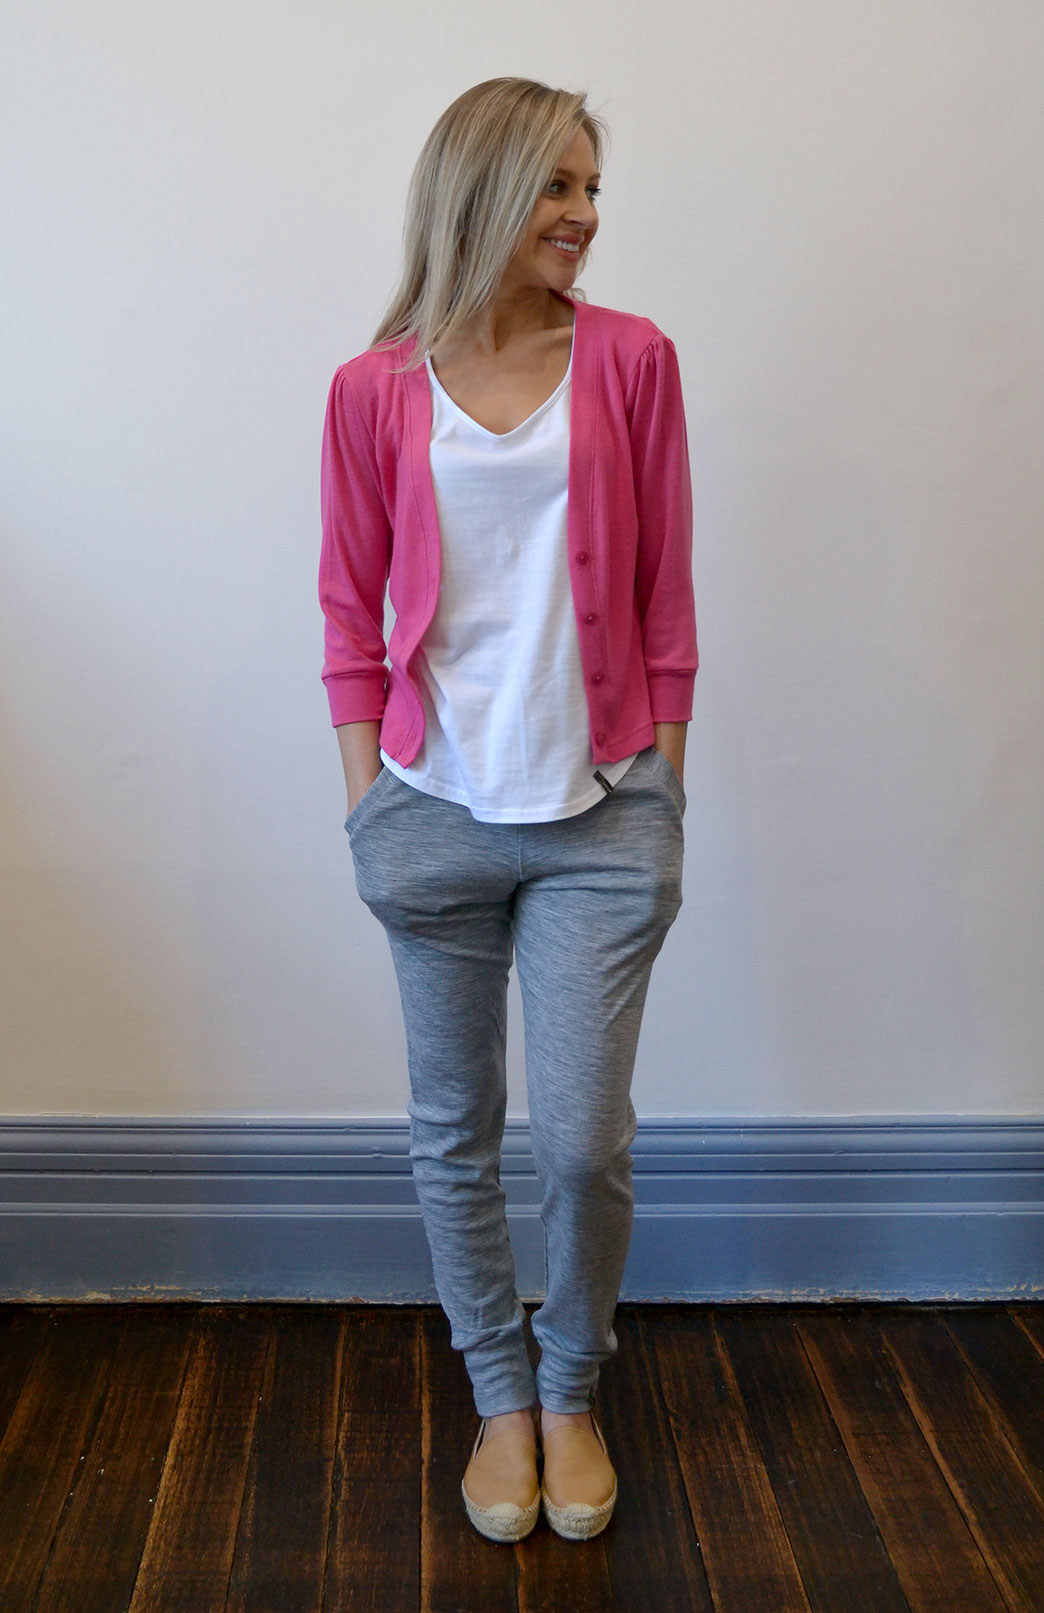 Crop Cardigan - 3/4 Sleeve - Women's Candy Pink Cropped Cardigan with 3/4 Sleeves and Buttons - Smitten Merino Tasmania Australia